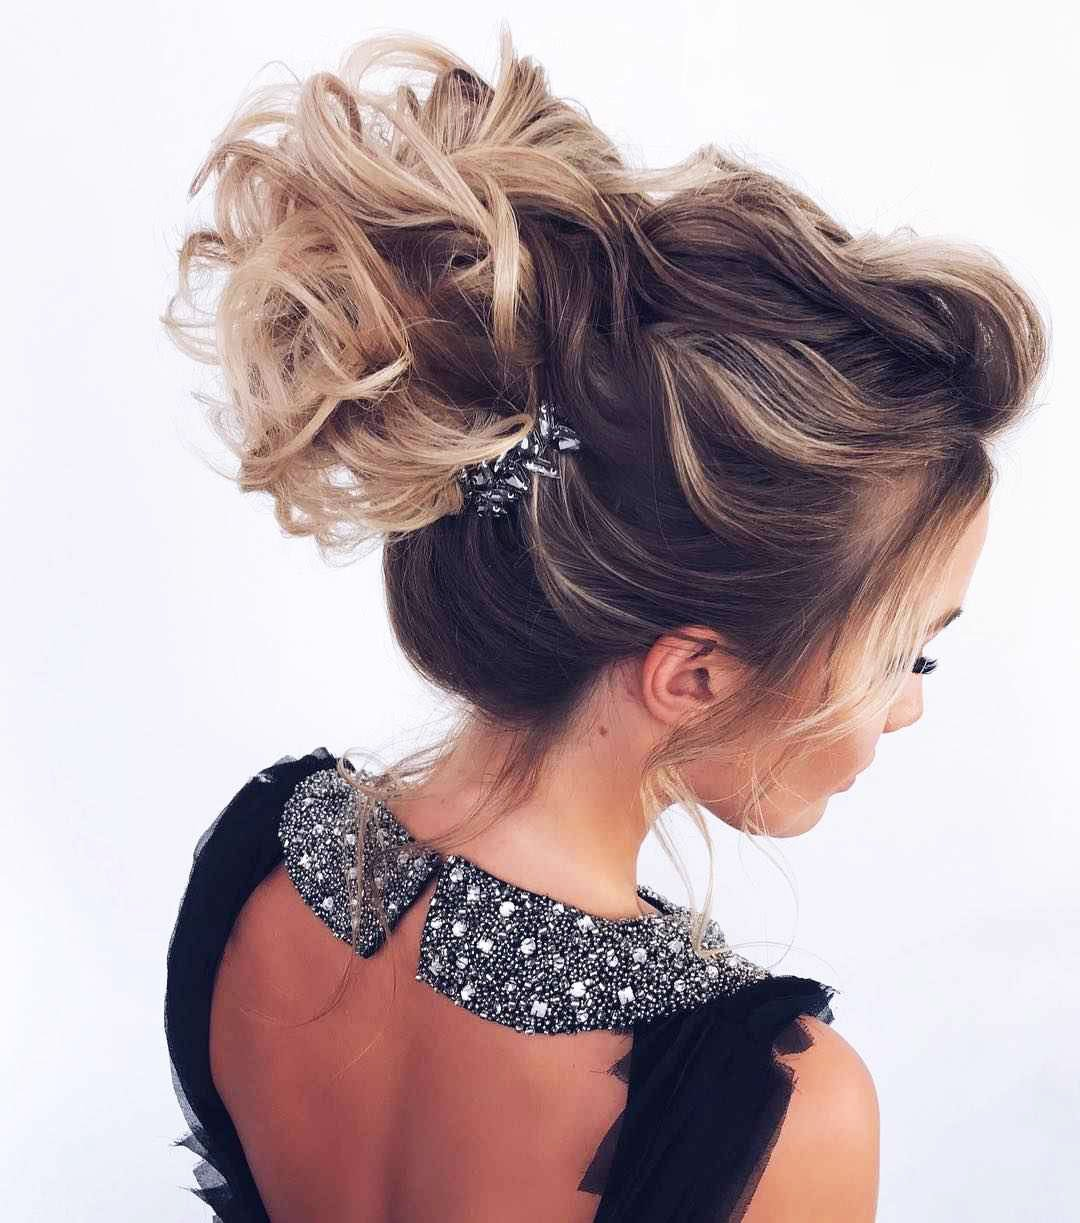 Hairstyles for prom for medium hair 2019-2020 photo 7